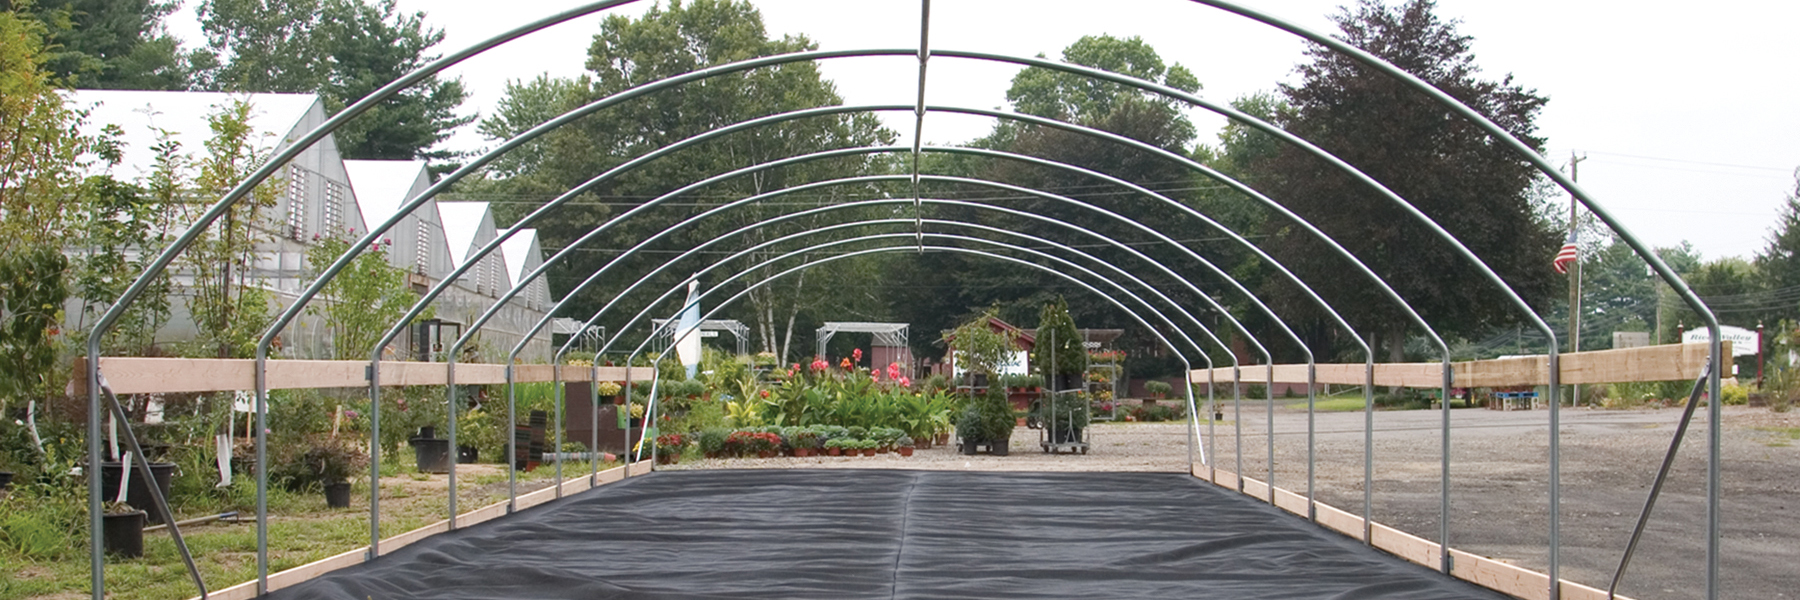 Cold Frame Structure